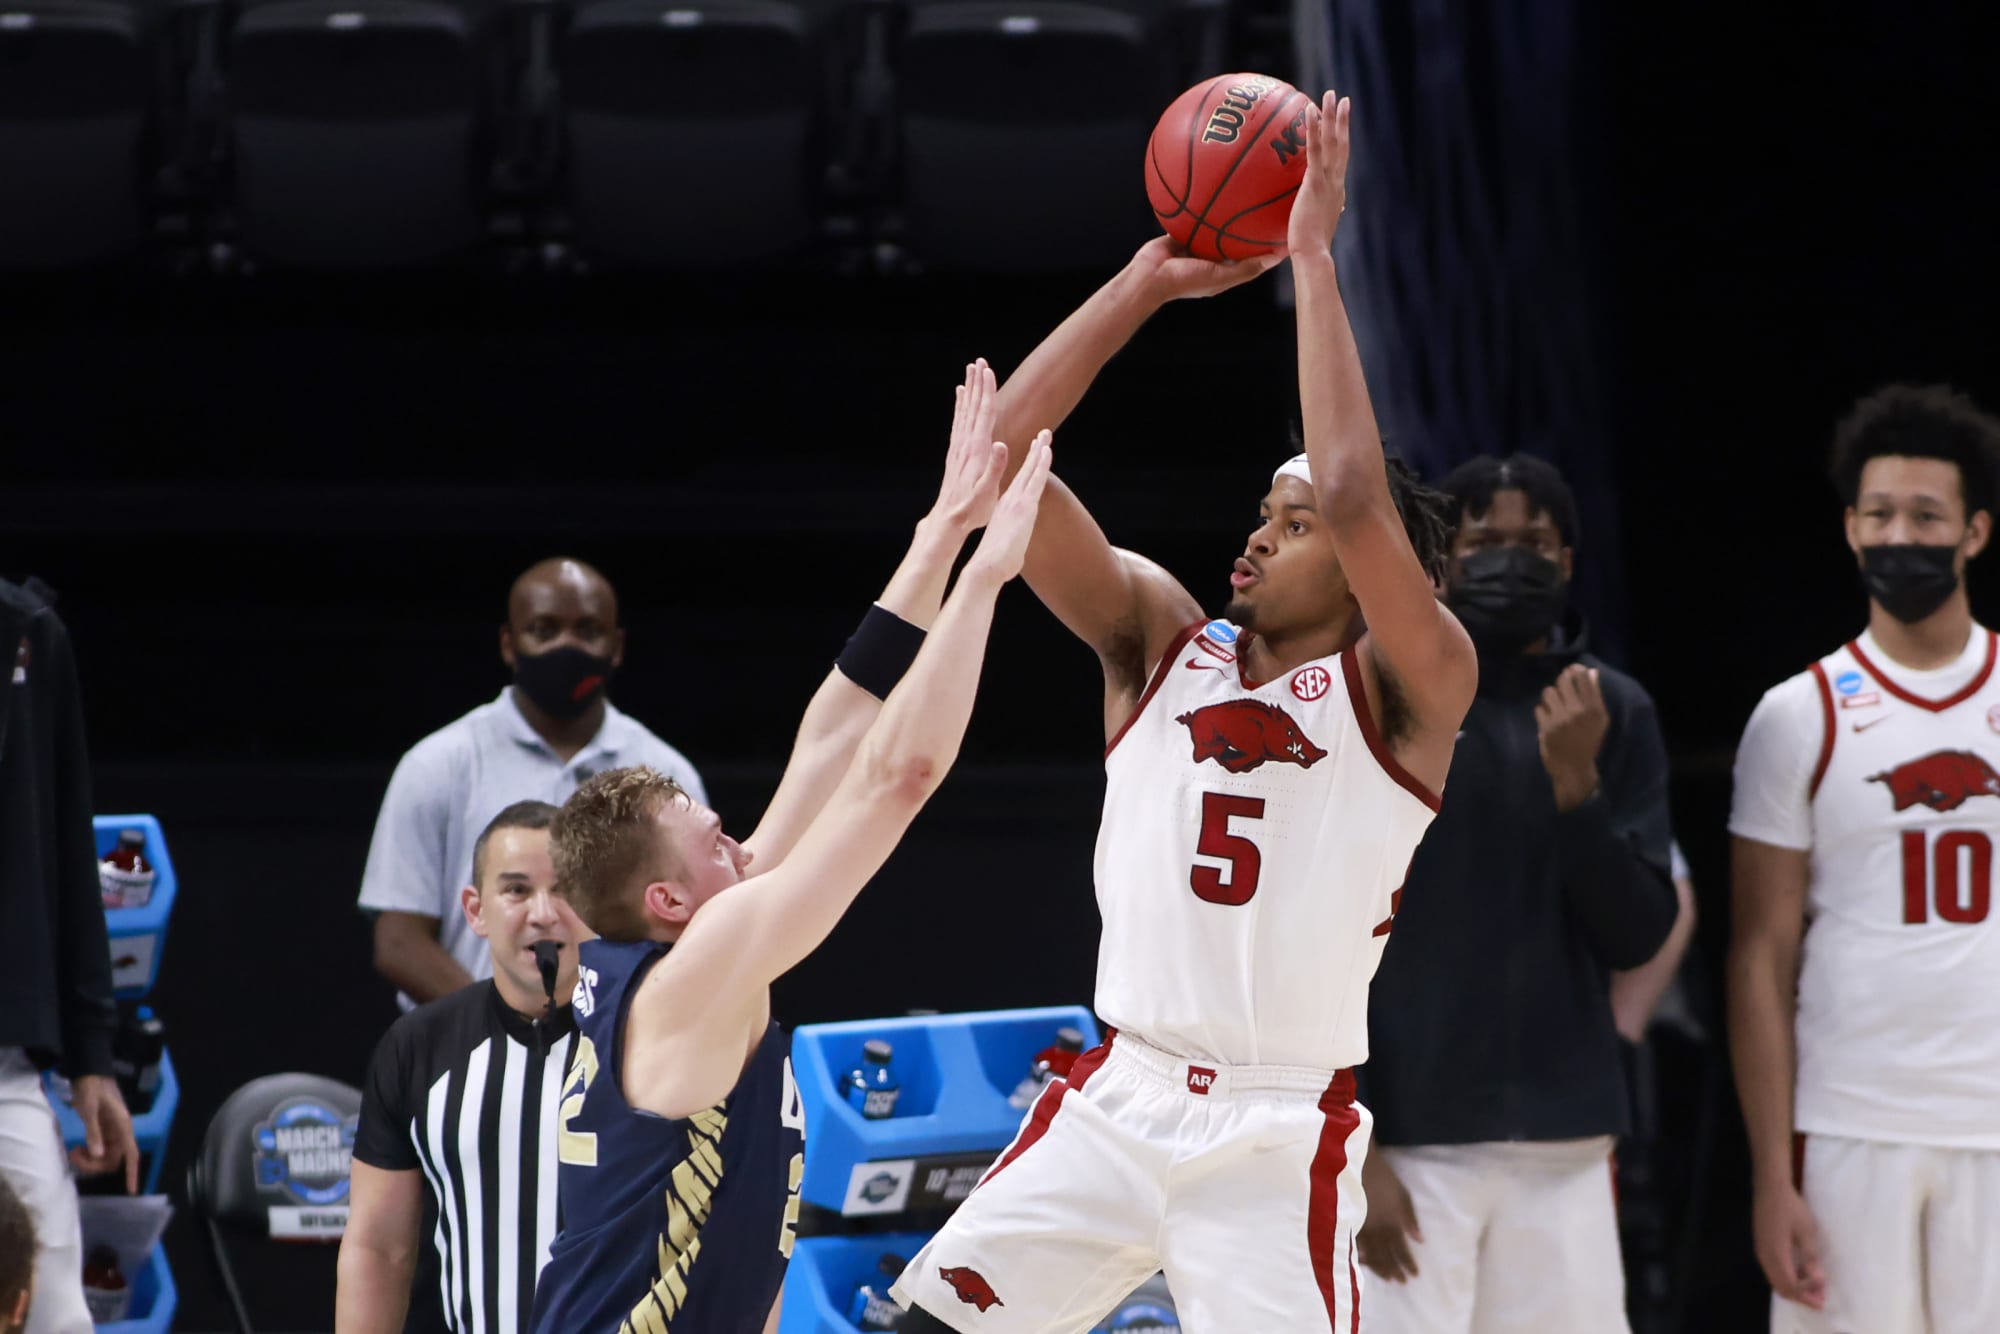 Toronto Raptors draft: Will Moses Moody end up with Toronto after Elite 8 exit?